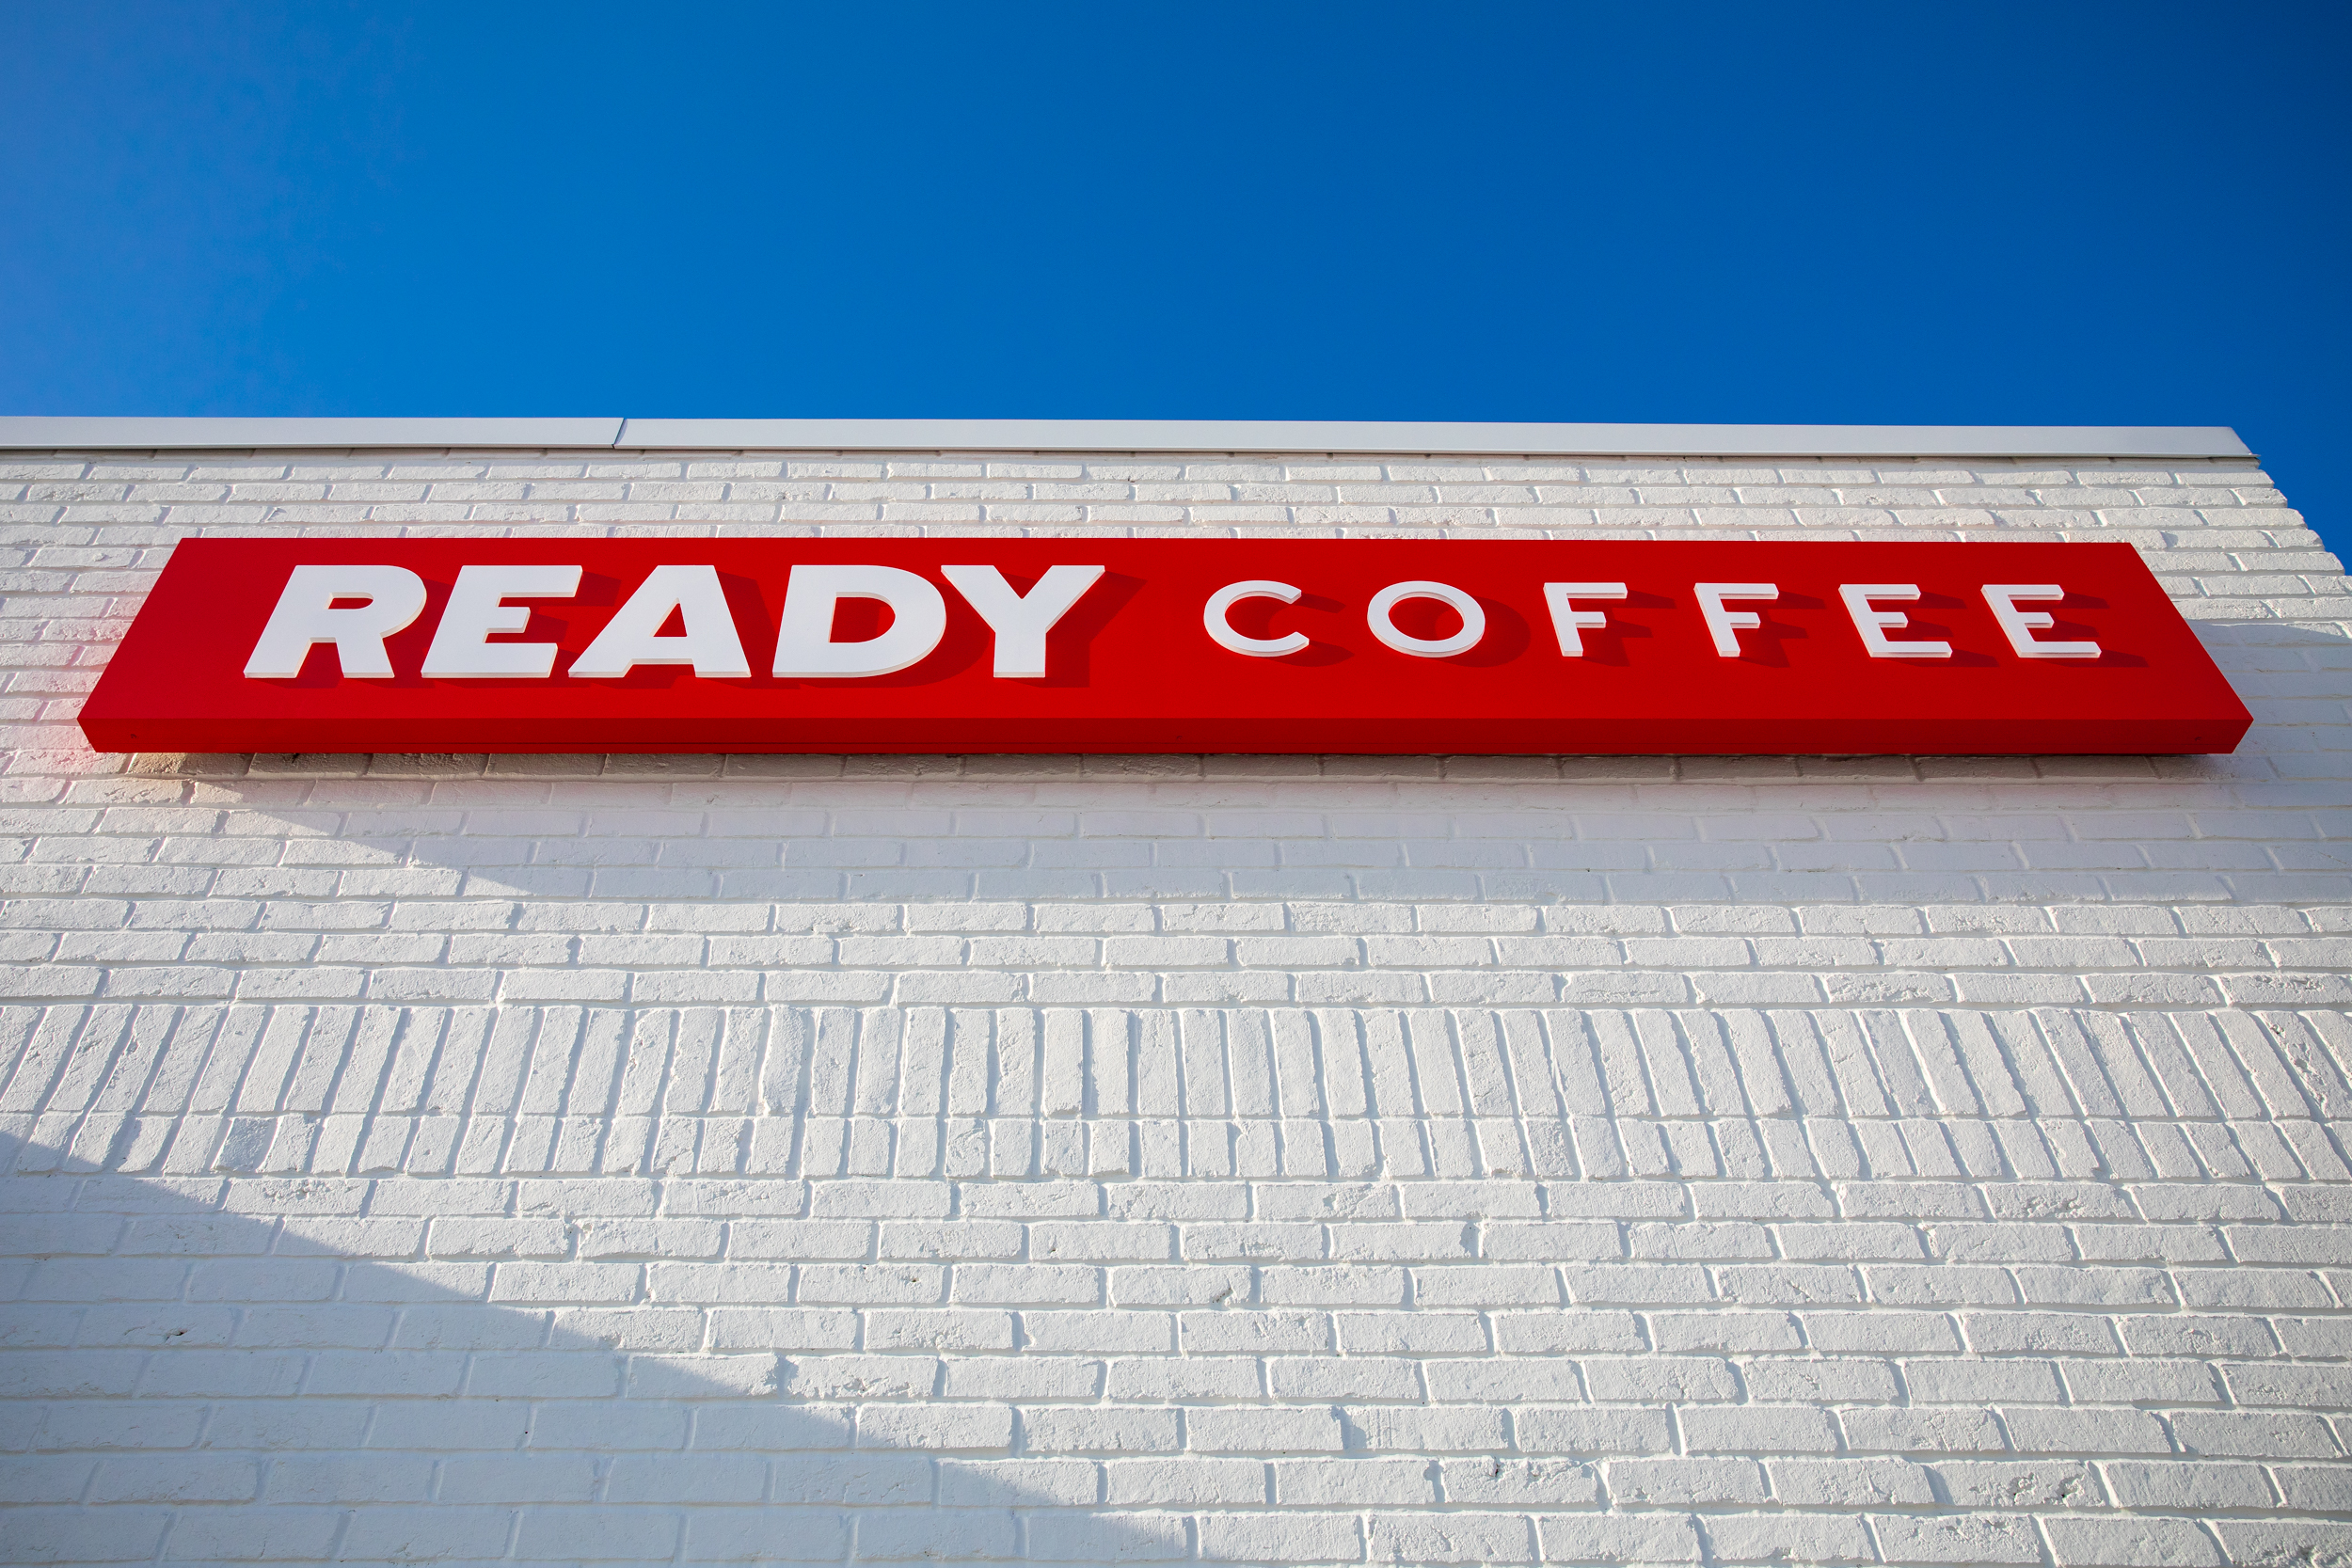 READY COFFEE CO.,  Wappingers Falls